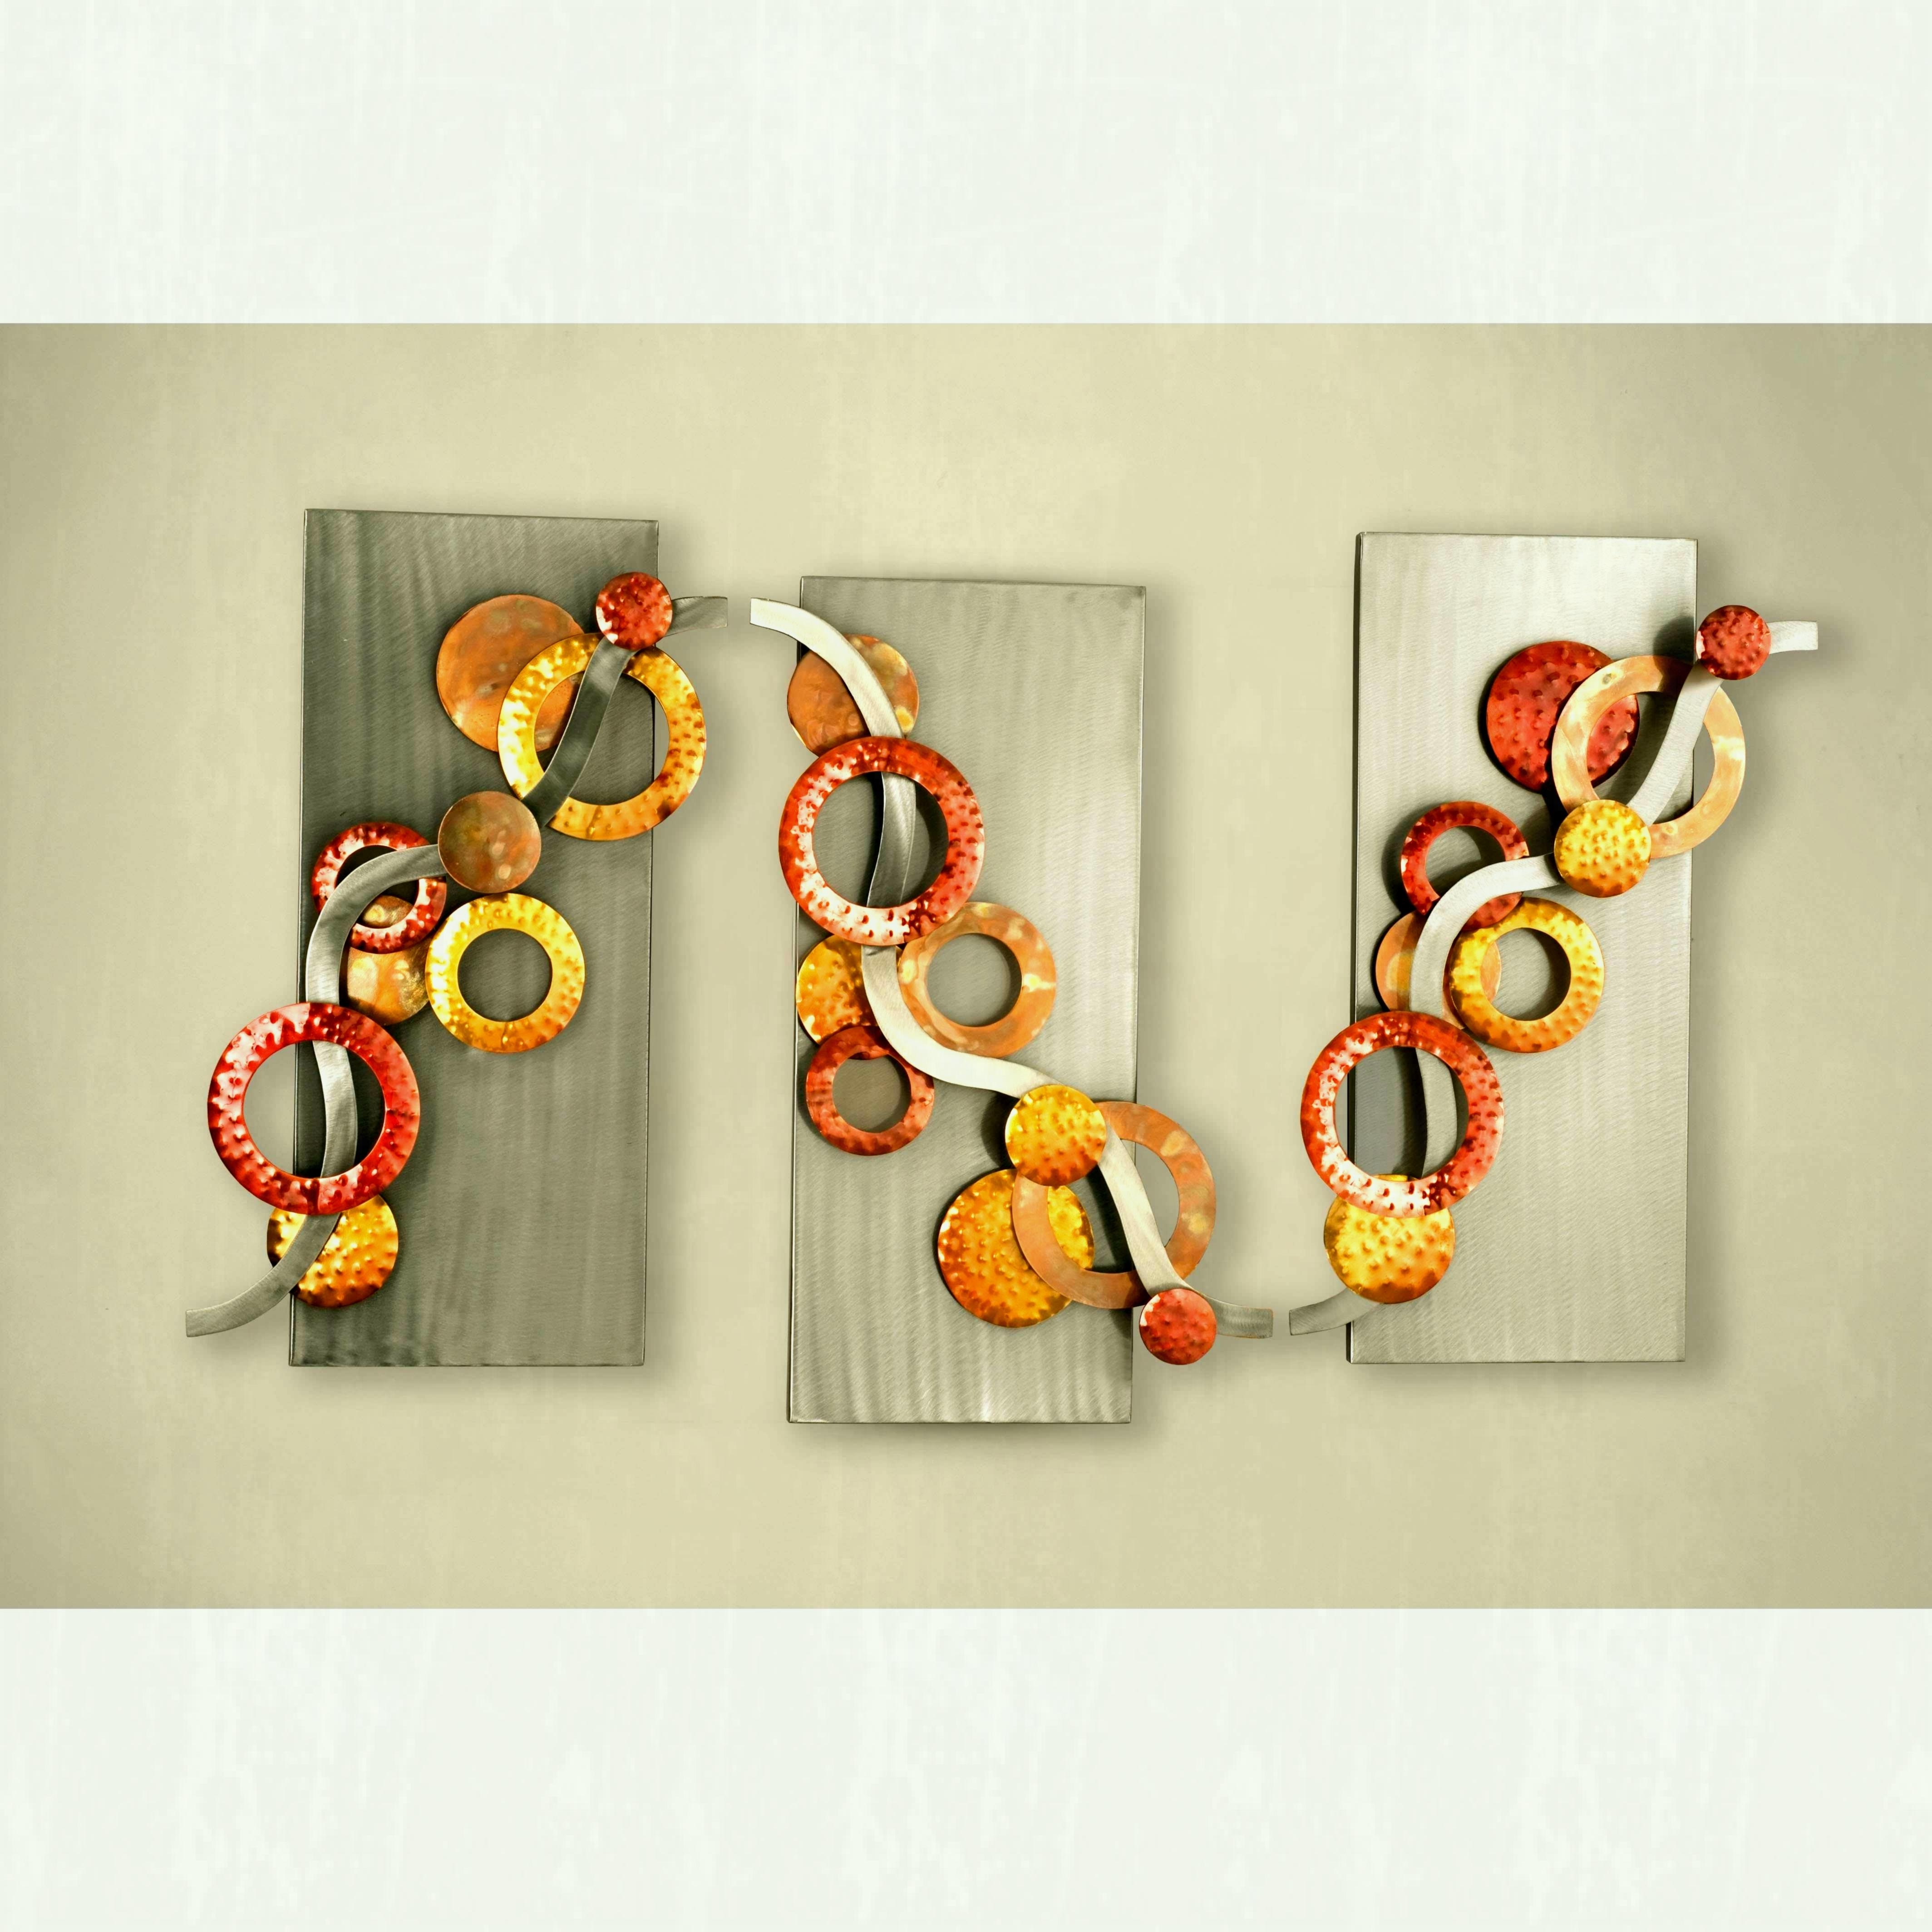 Widely Used Canvas Wall Art Sets Fresh Ideas Design Circle Adorable Set Of Throughout Wall Art Sets (View 10 of 15)